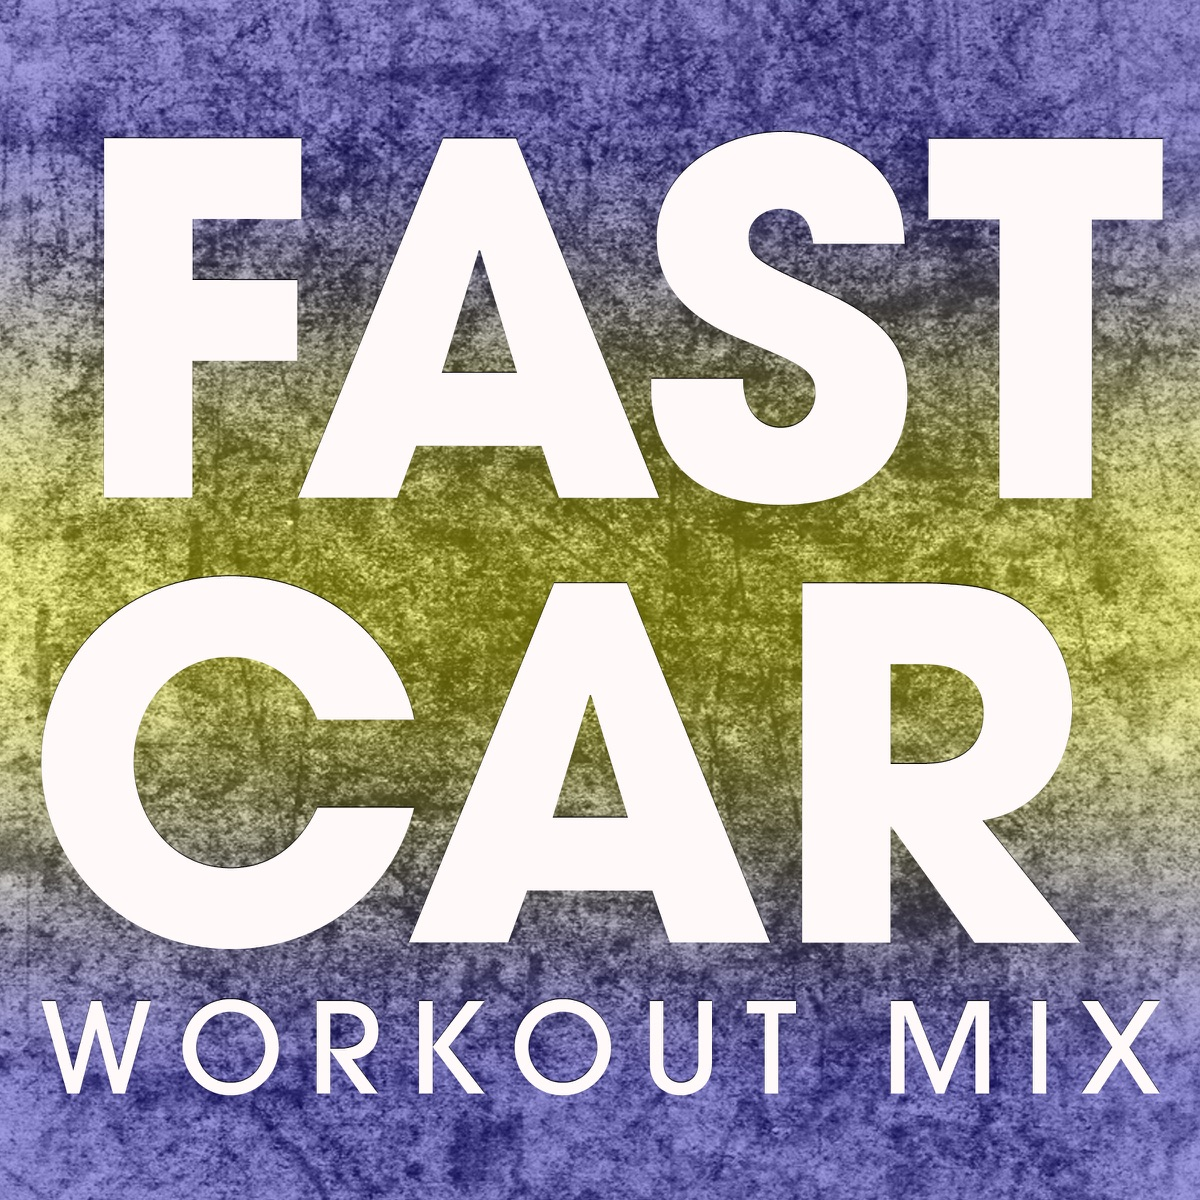 Fast Car Album Cover by Power Music Workout